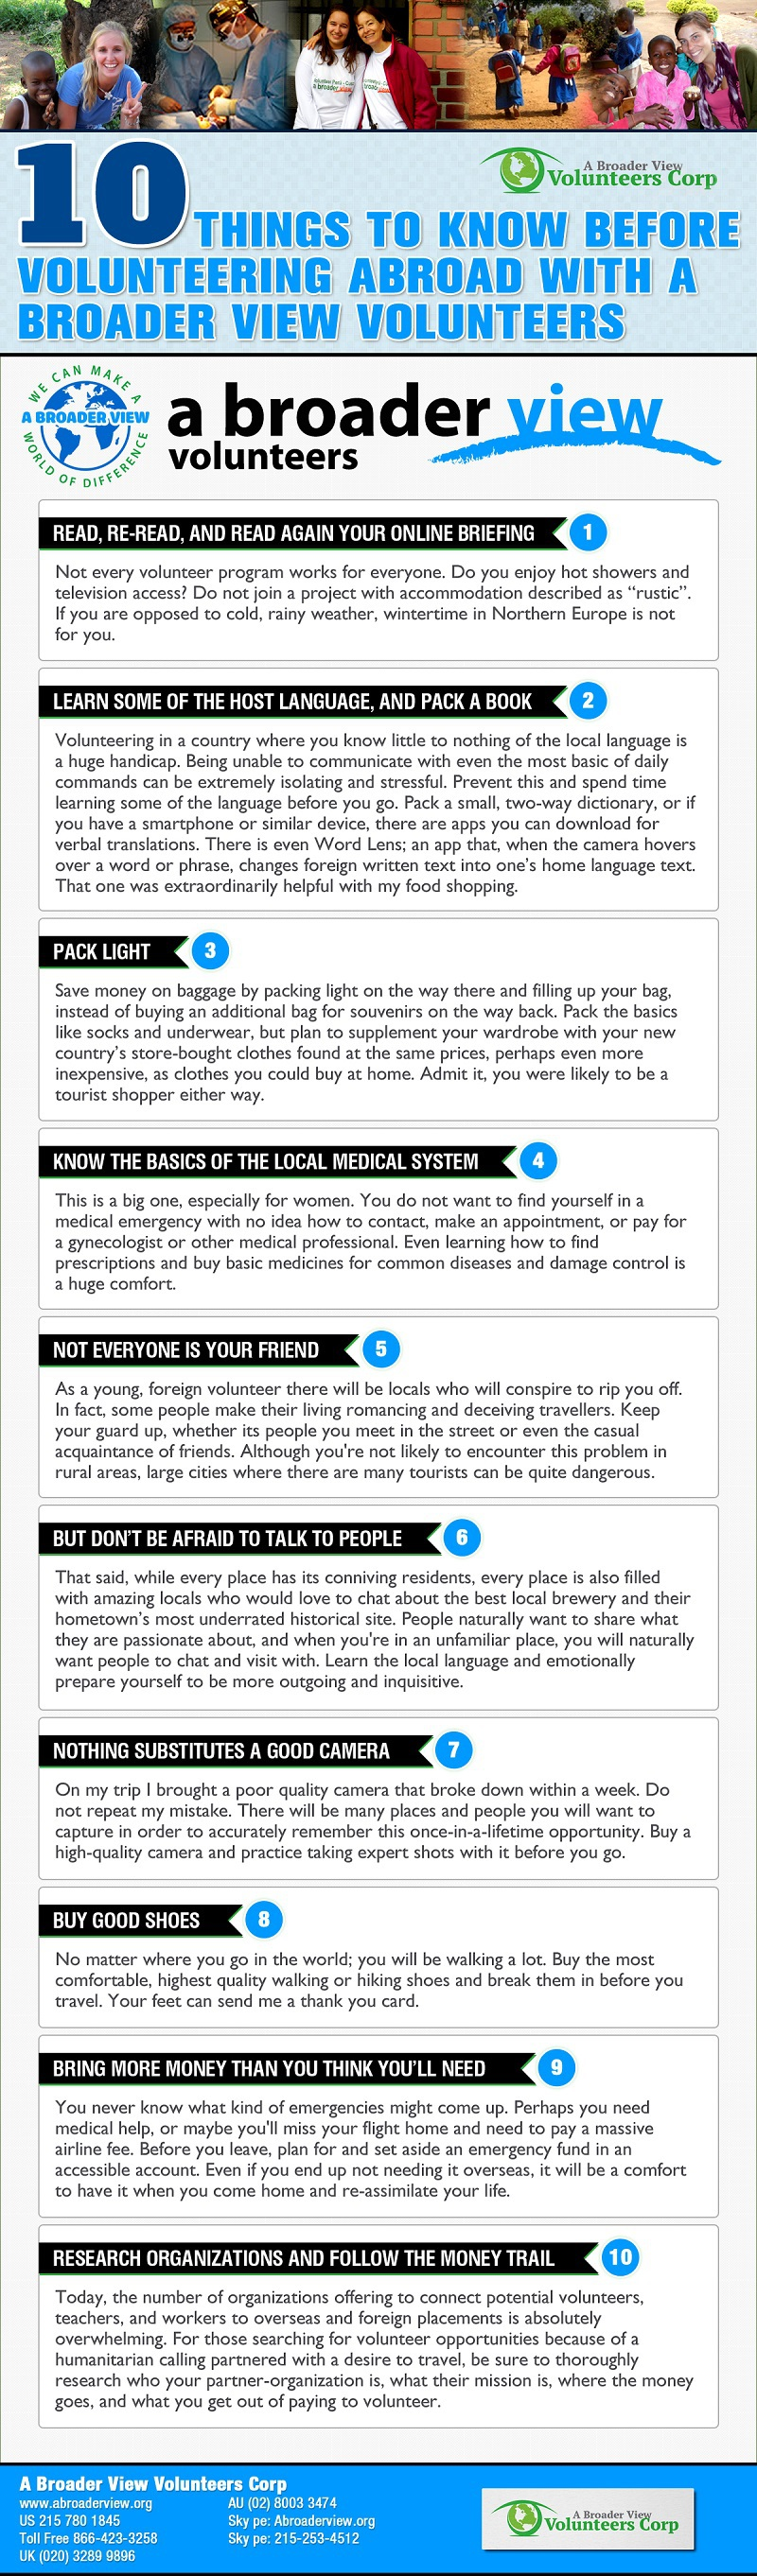 Things to Know Before Volunteering Abroad Infographic